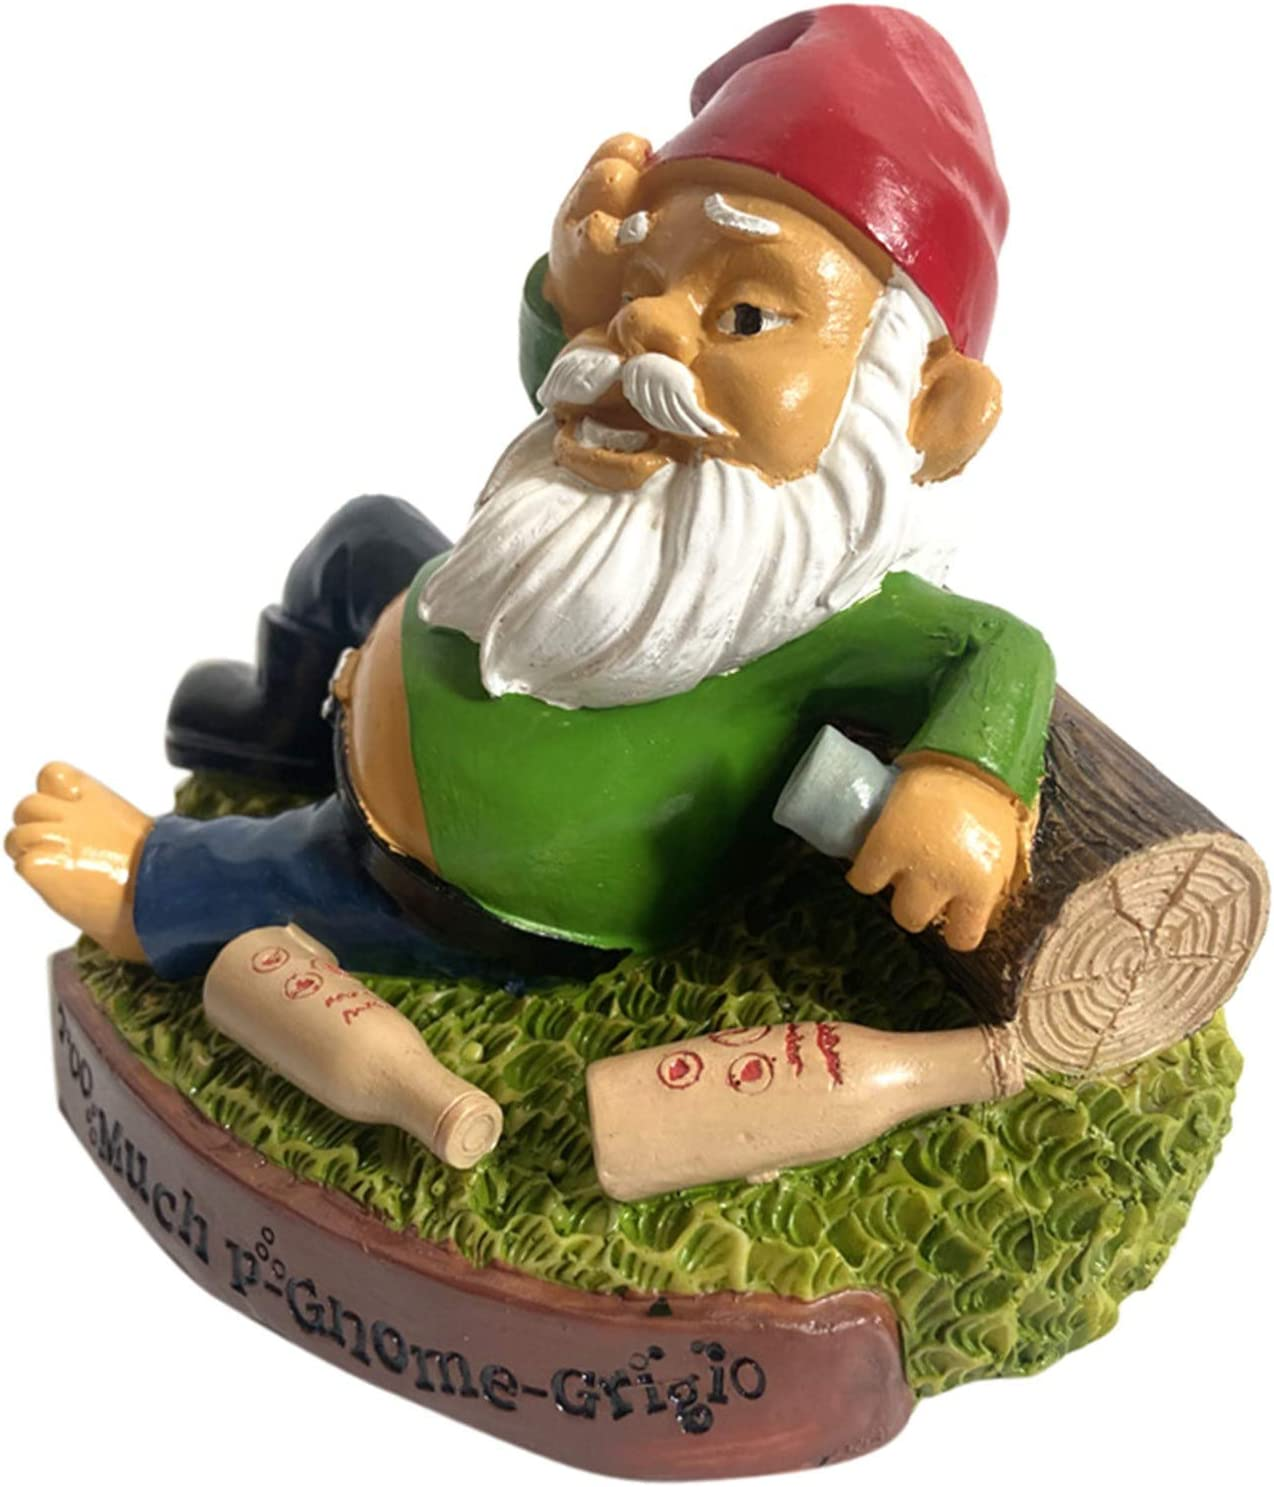 "Drunken Gnome - 6"" Tall Polyresin - Owill Funny Garden Gnome for Patio Lawn Yard Ornaments, Indoor Outdoor Home Decorations - Red and Green Funny Gnomes Garden Decorations"